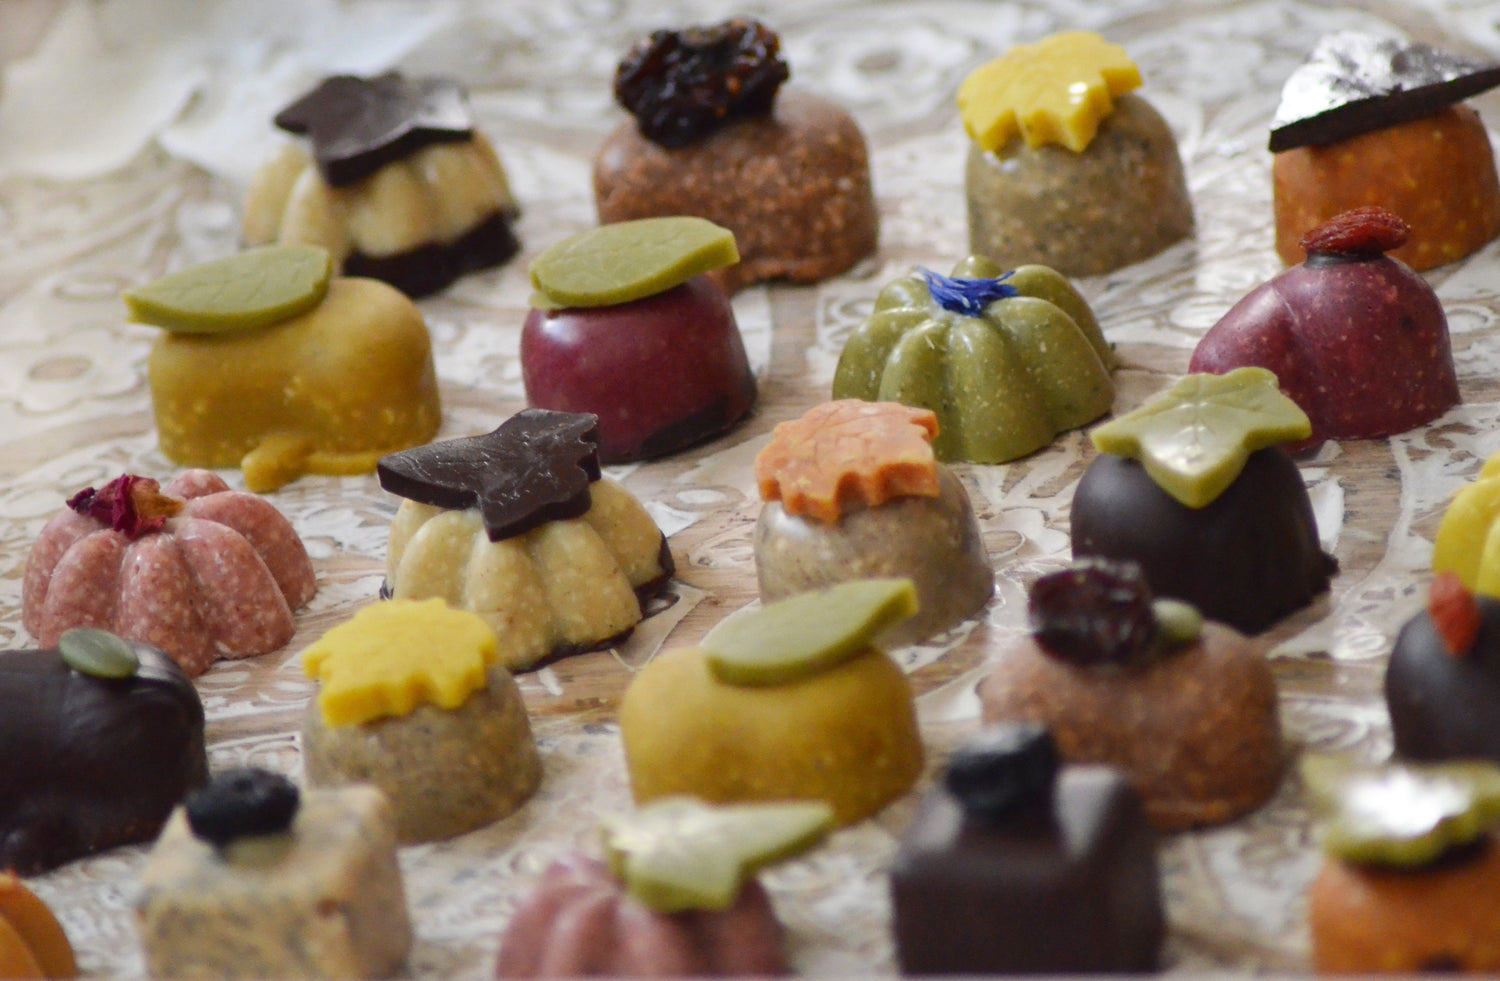 Luxury, Handmade, Vegan Chocolate  - Party Canapés Plate